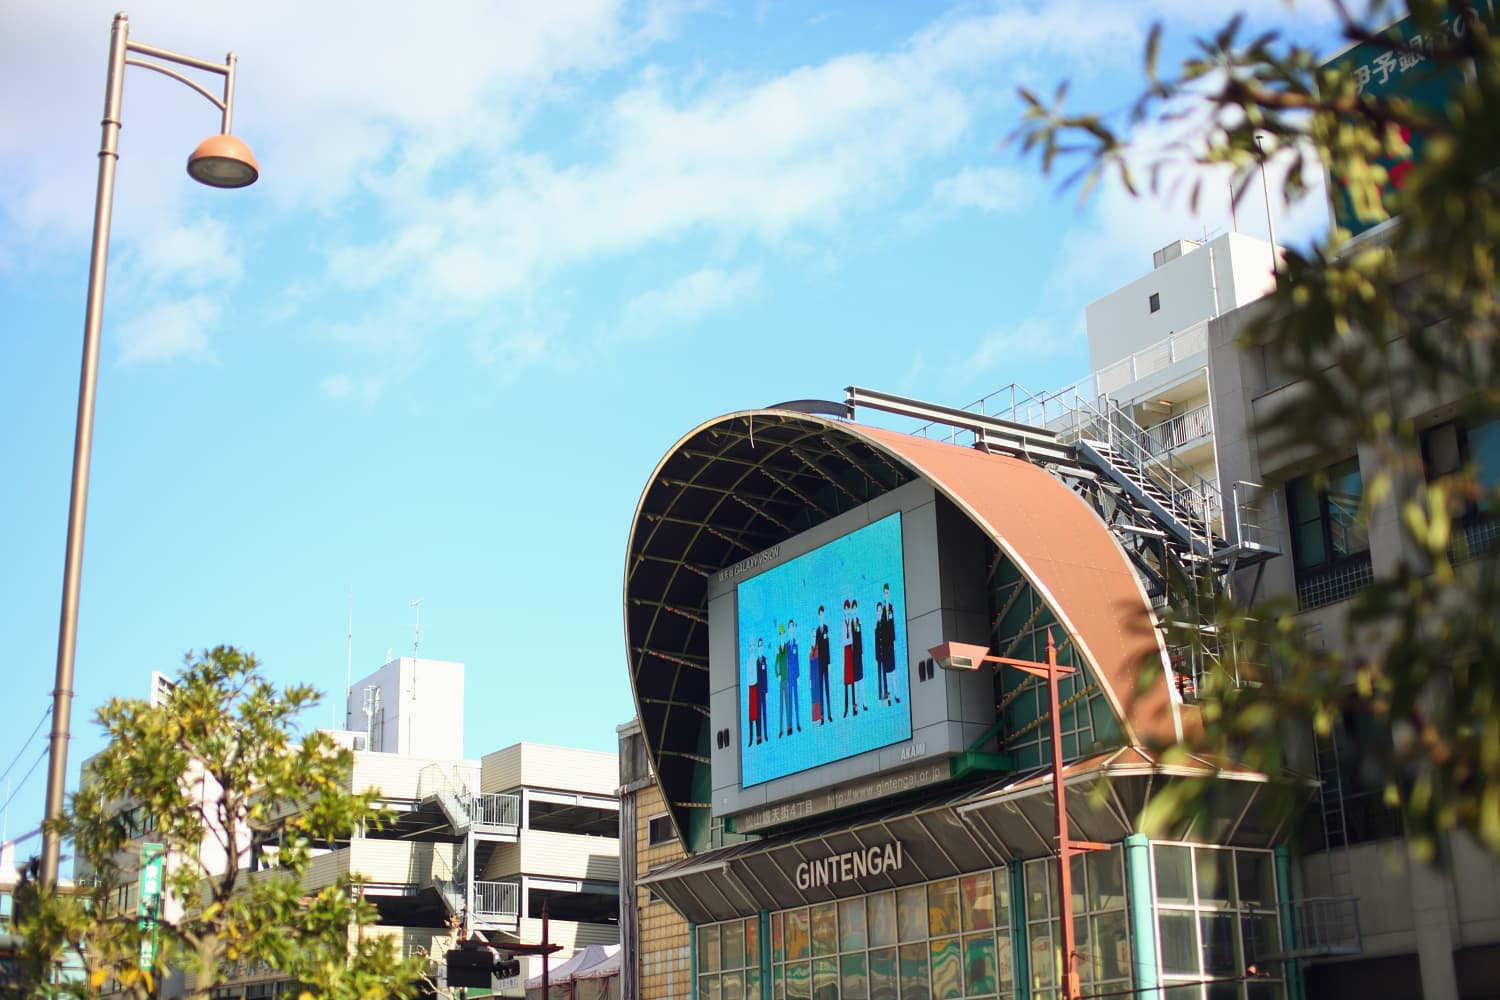 Gintengai Shopping Arcade